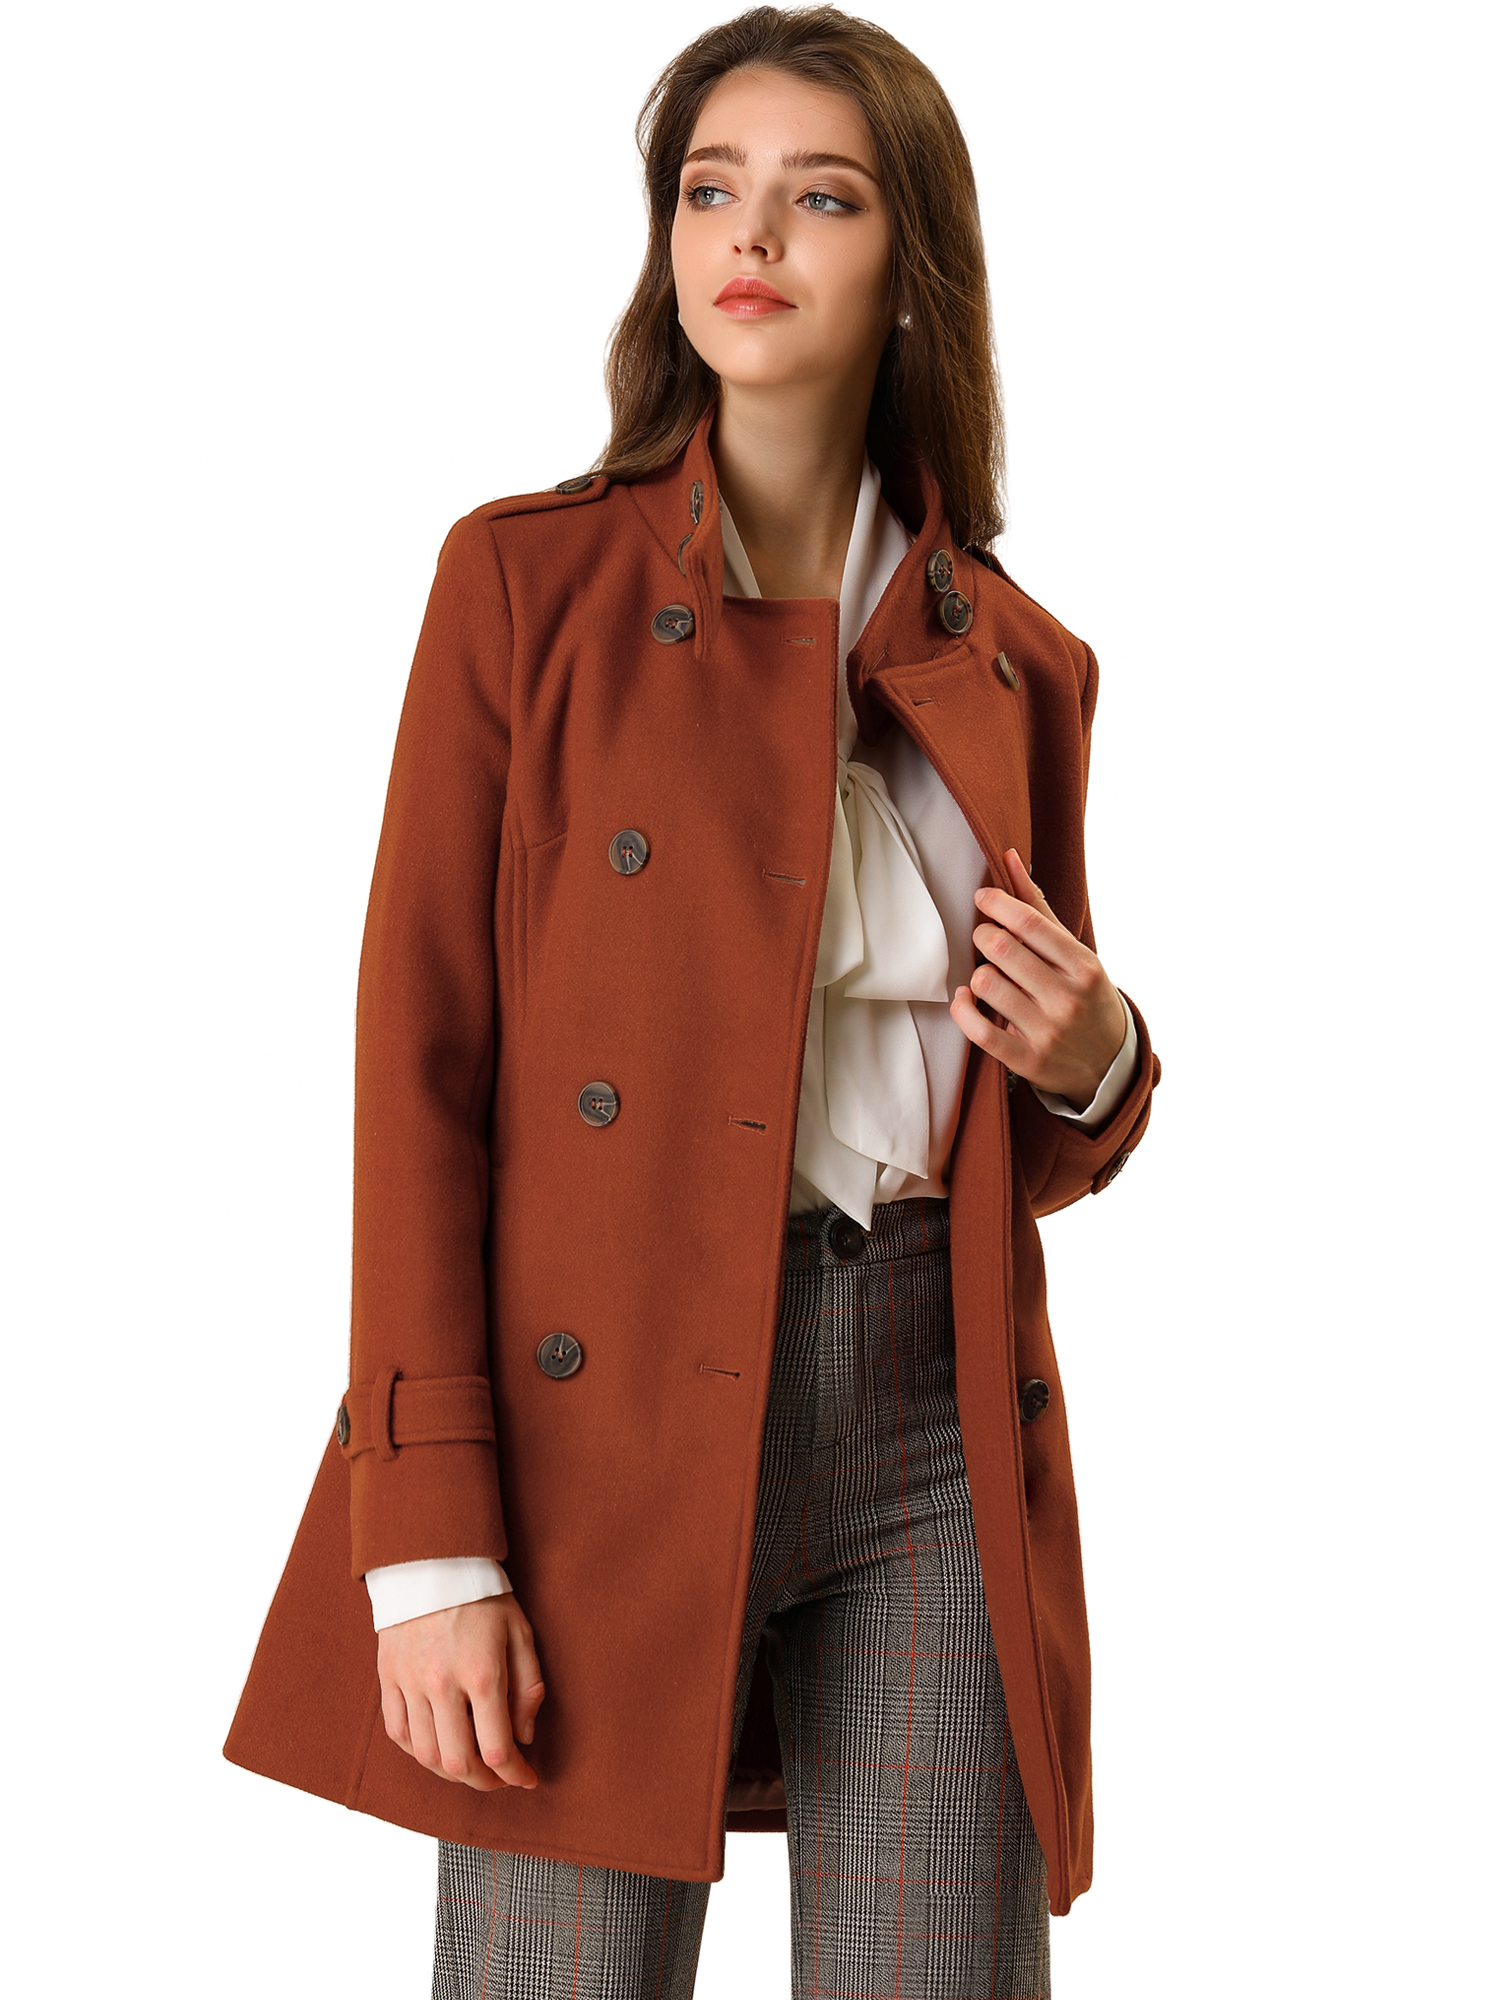 Women's Winter Stand Collar Double Breasted Outwear Trench Coat Brown S